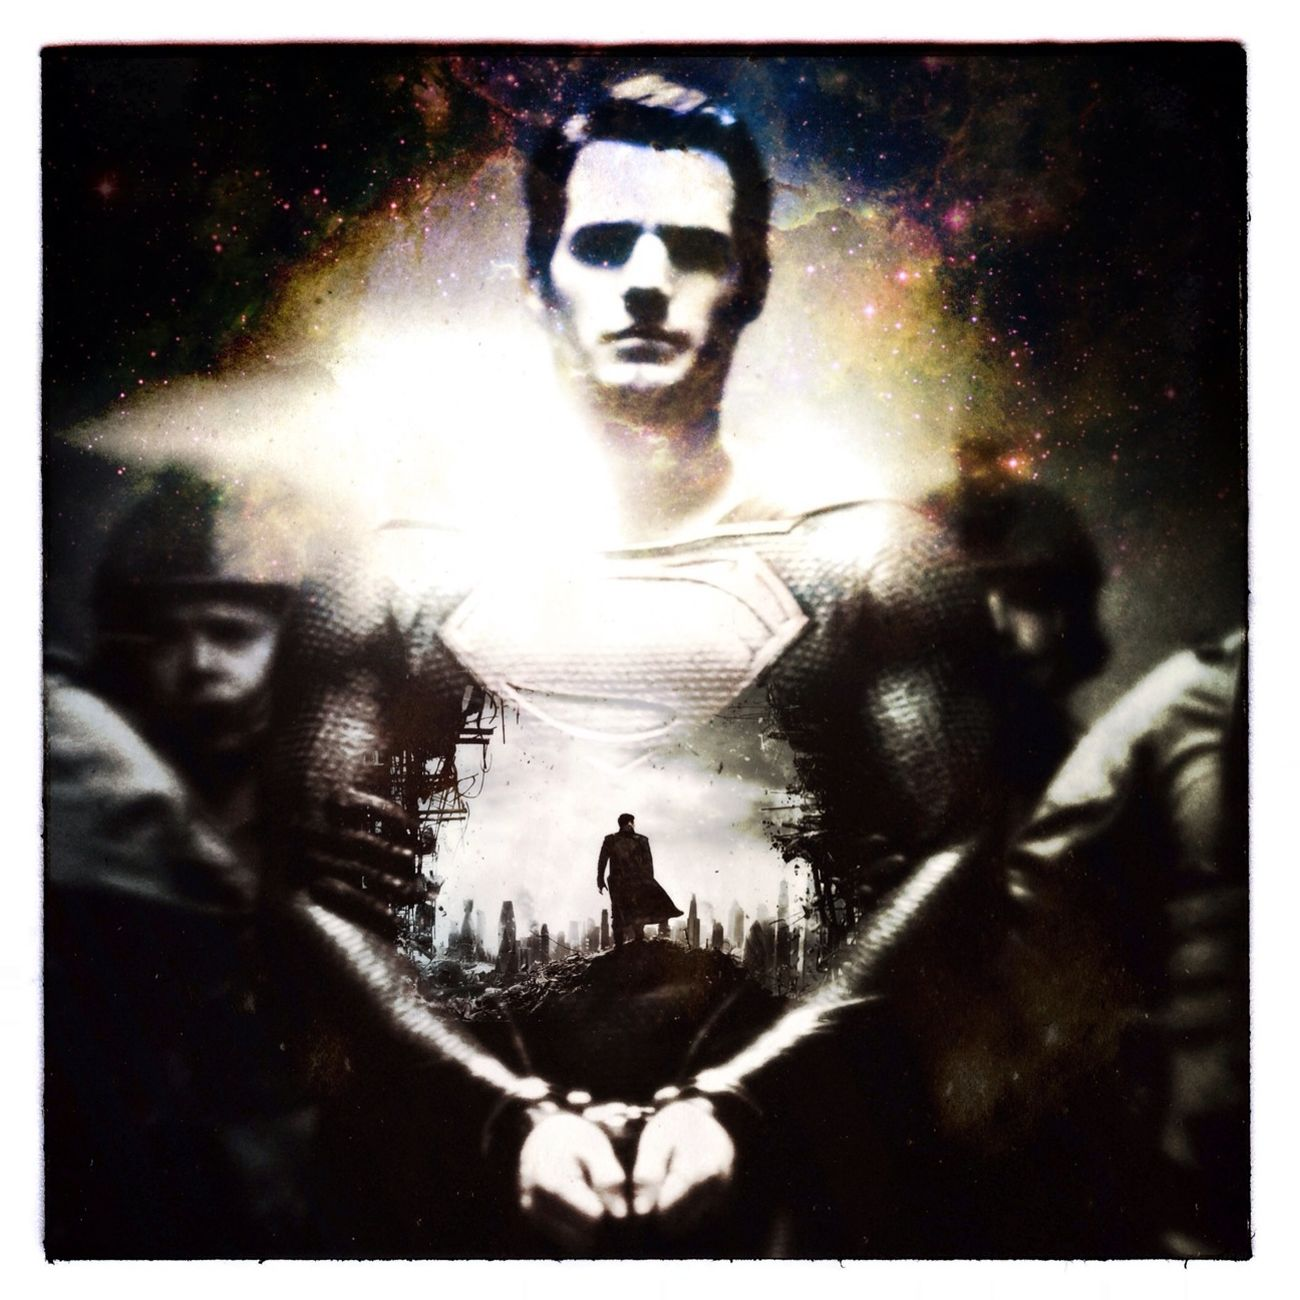 This is a double exposure made with to existing posters for the upcoming movies Superman & Star Trek